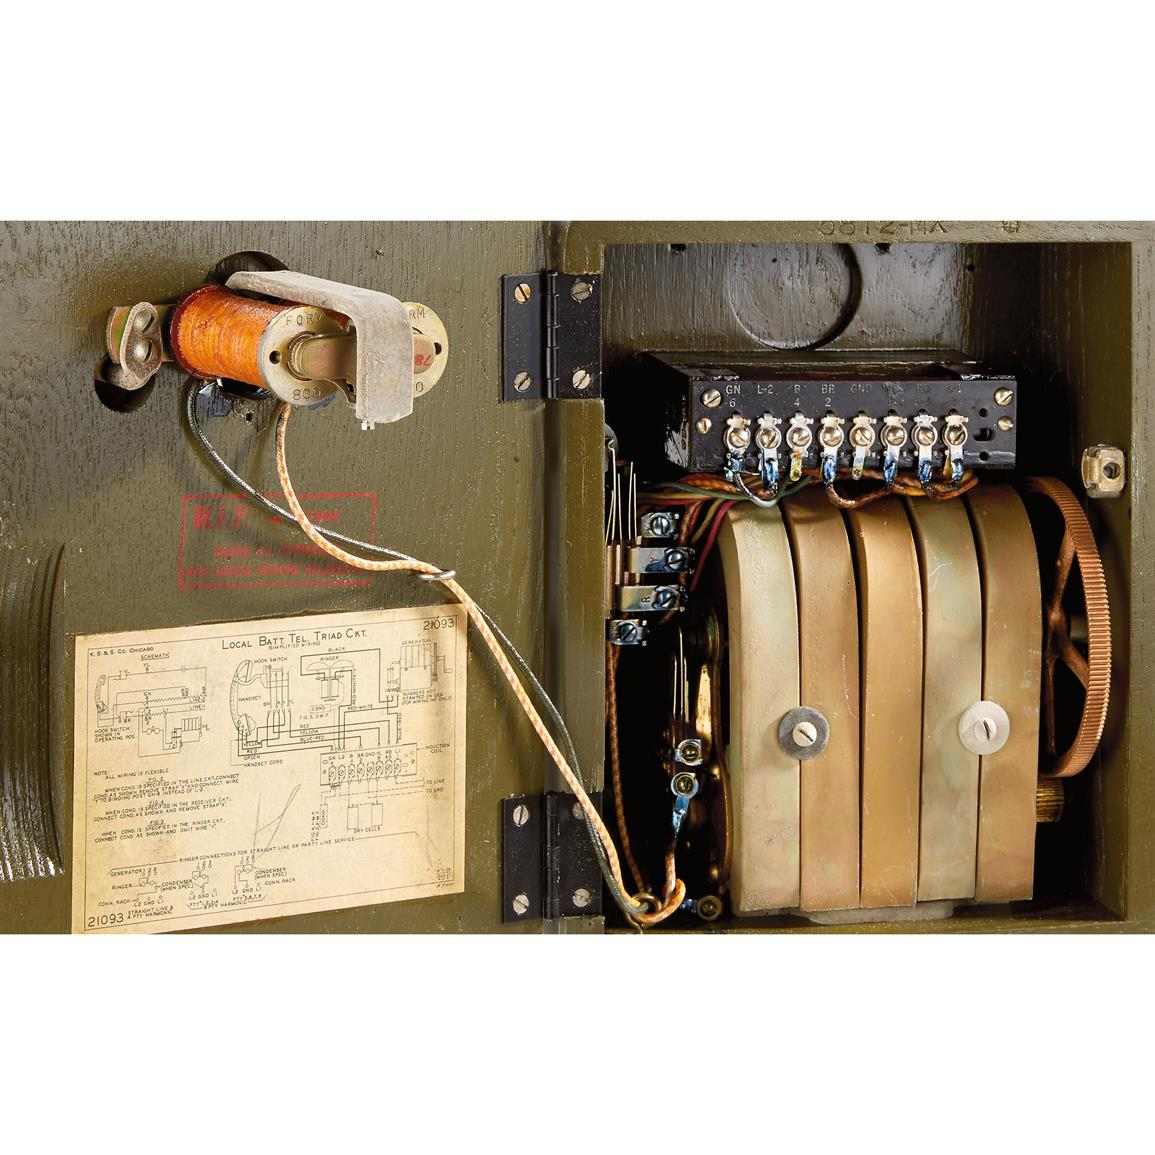 Hinged door reveals internal communication workings and operations diagram from yesteryear